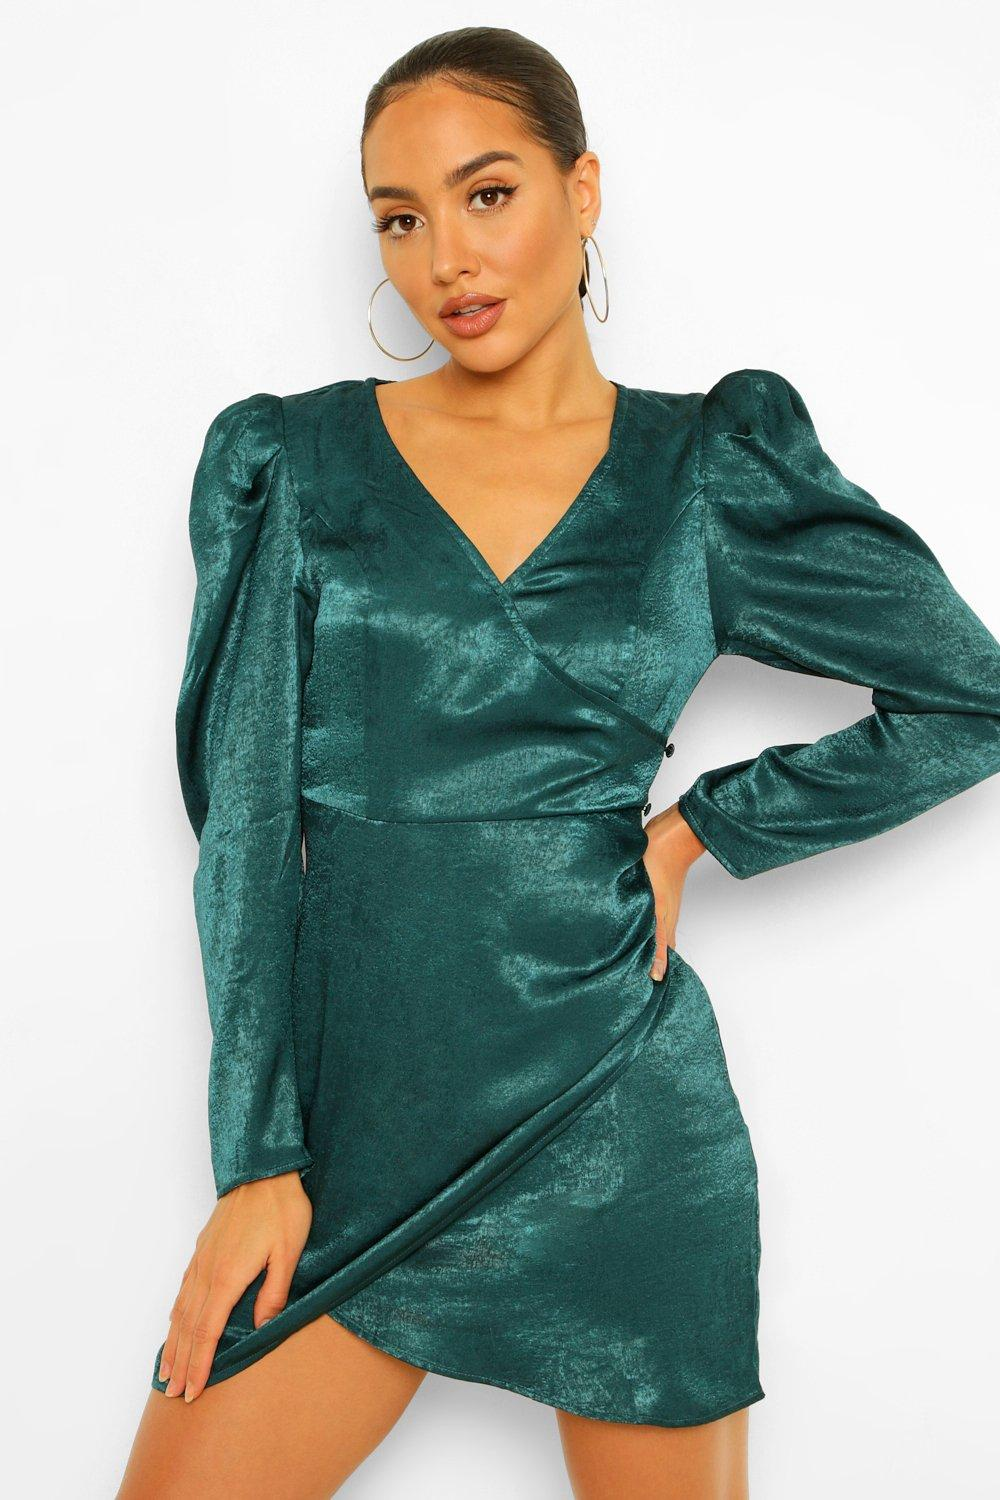 80s Dresses   Casual to Party Dresses Womens Satin Puff Sleeve Draped Mini Dress - Green - 8 $20.00 AT vintagedancer.com